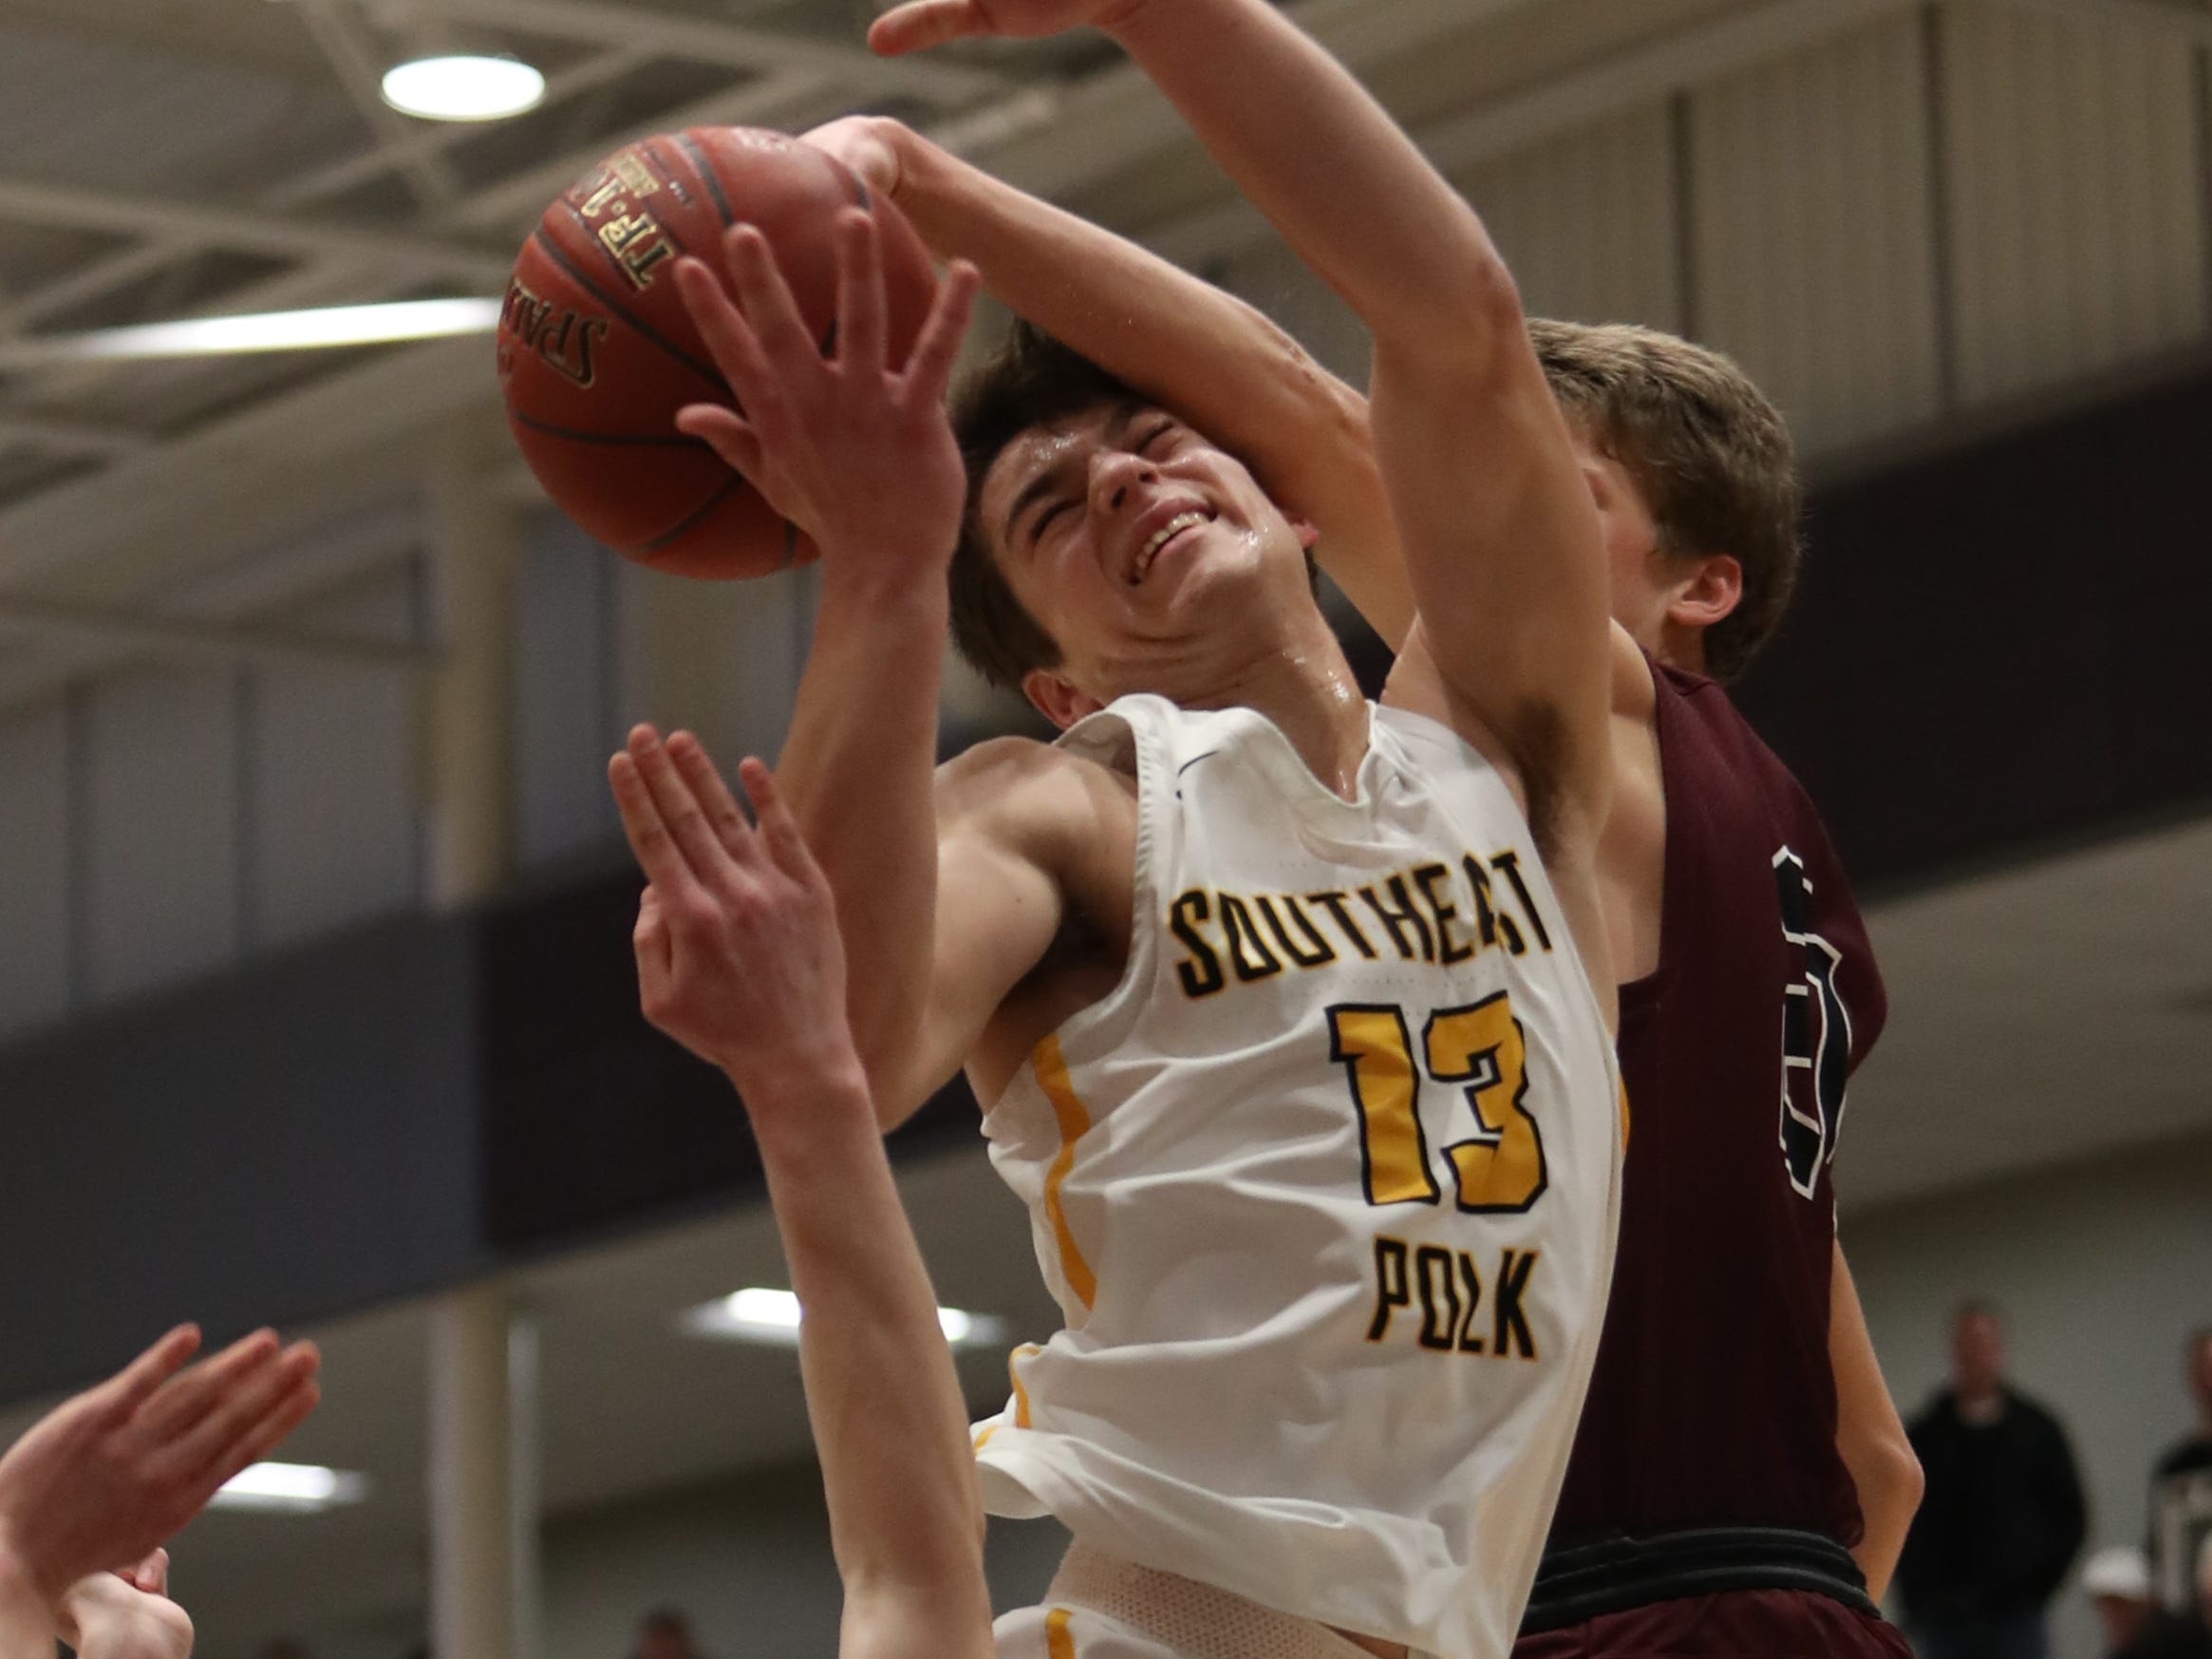 Southeast Polk's Dominic Caggiano (13) is fouled by Dowling Catholic's Ryan Riggs (21) during their game at Johnston High School in Johnston, Iowa, on Tuesday, Feb. 26, 2019. Dowling won the game 44-40 to advance to state.